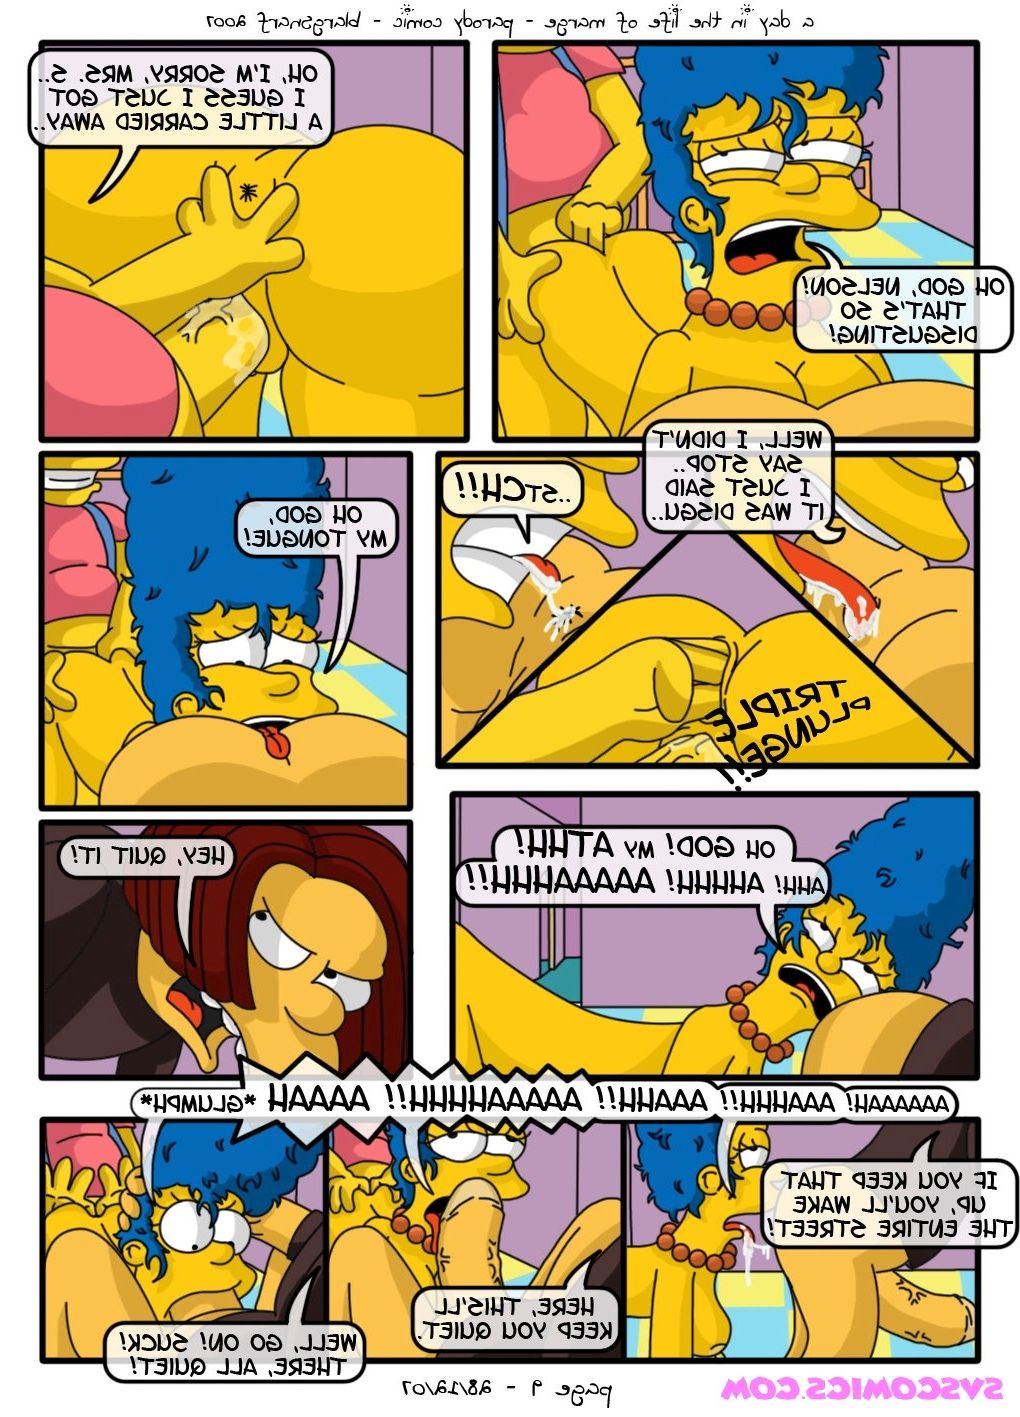 day-life-marge-simpsons image_9564.jpg